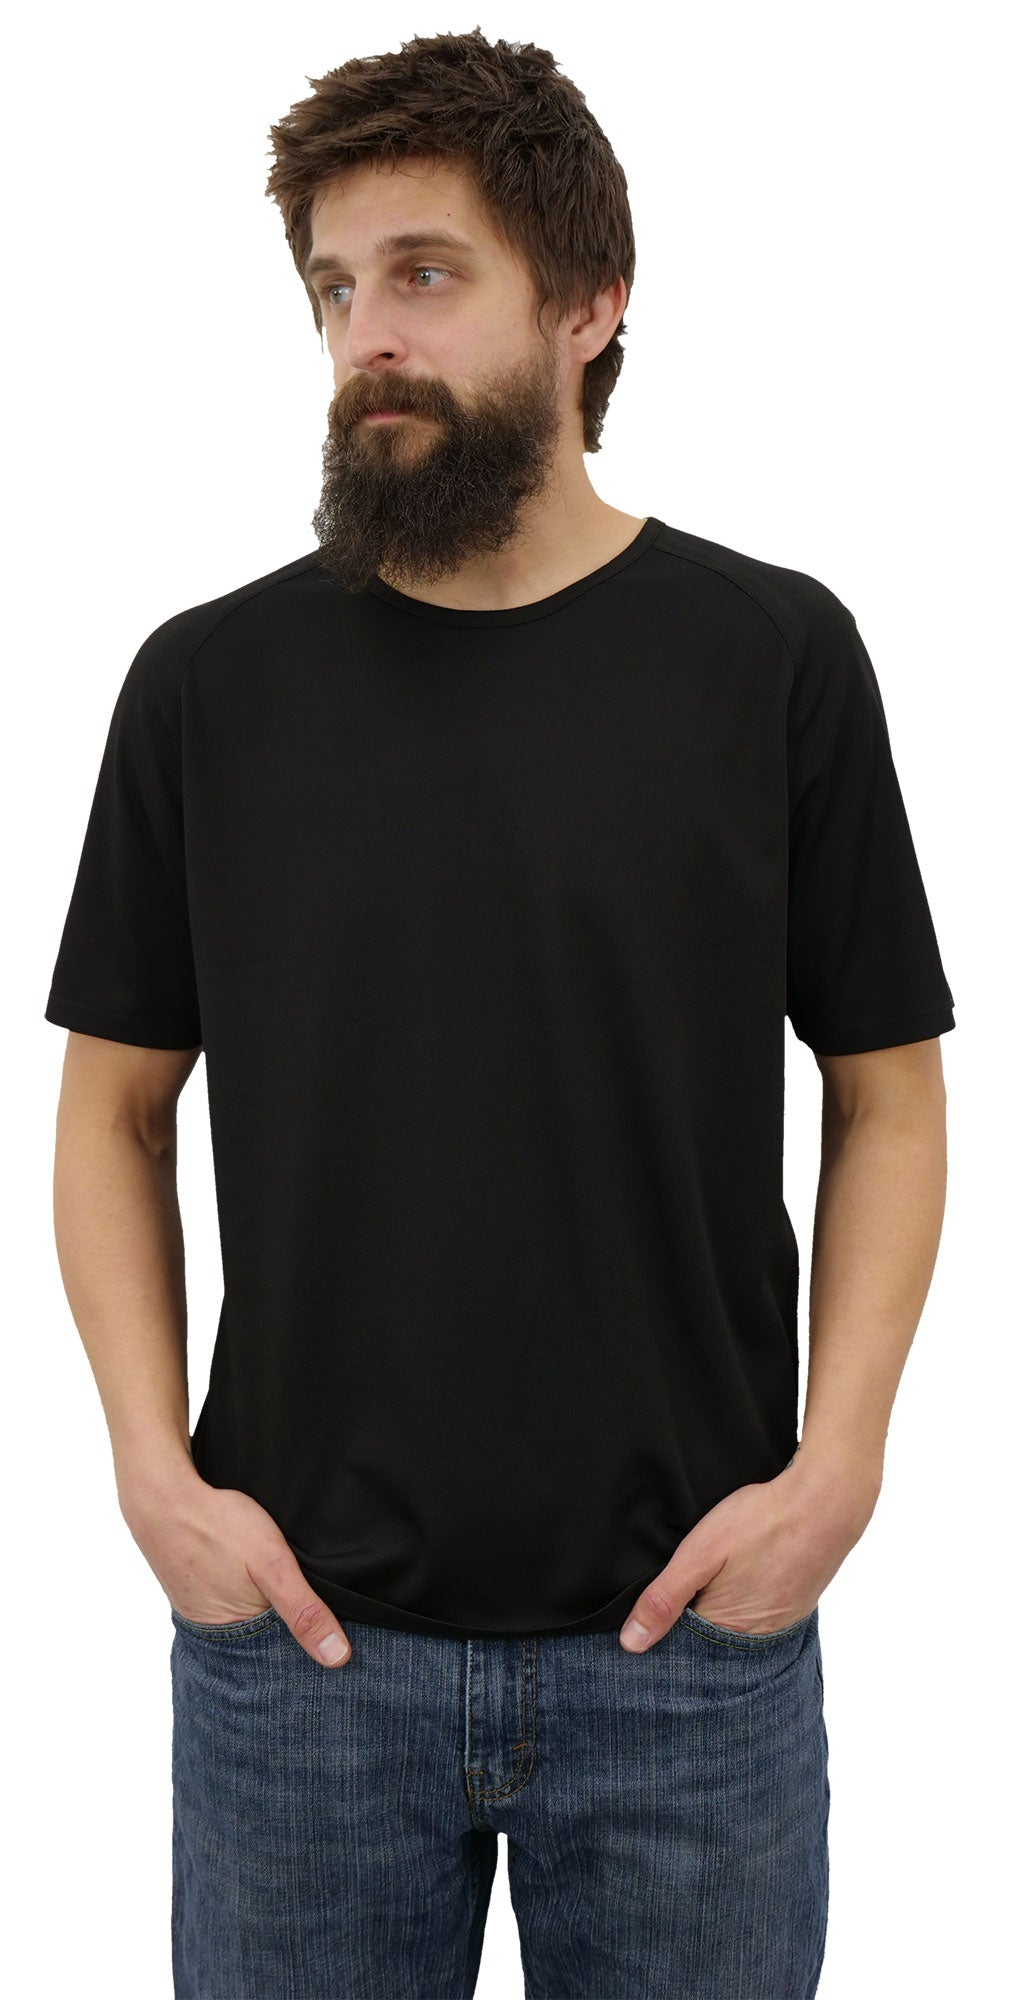 2000 Series Black 100% Polyester DTG Ready To Print Shirt